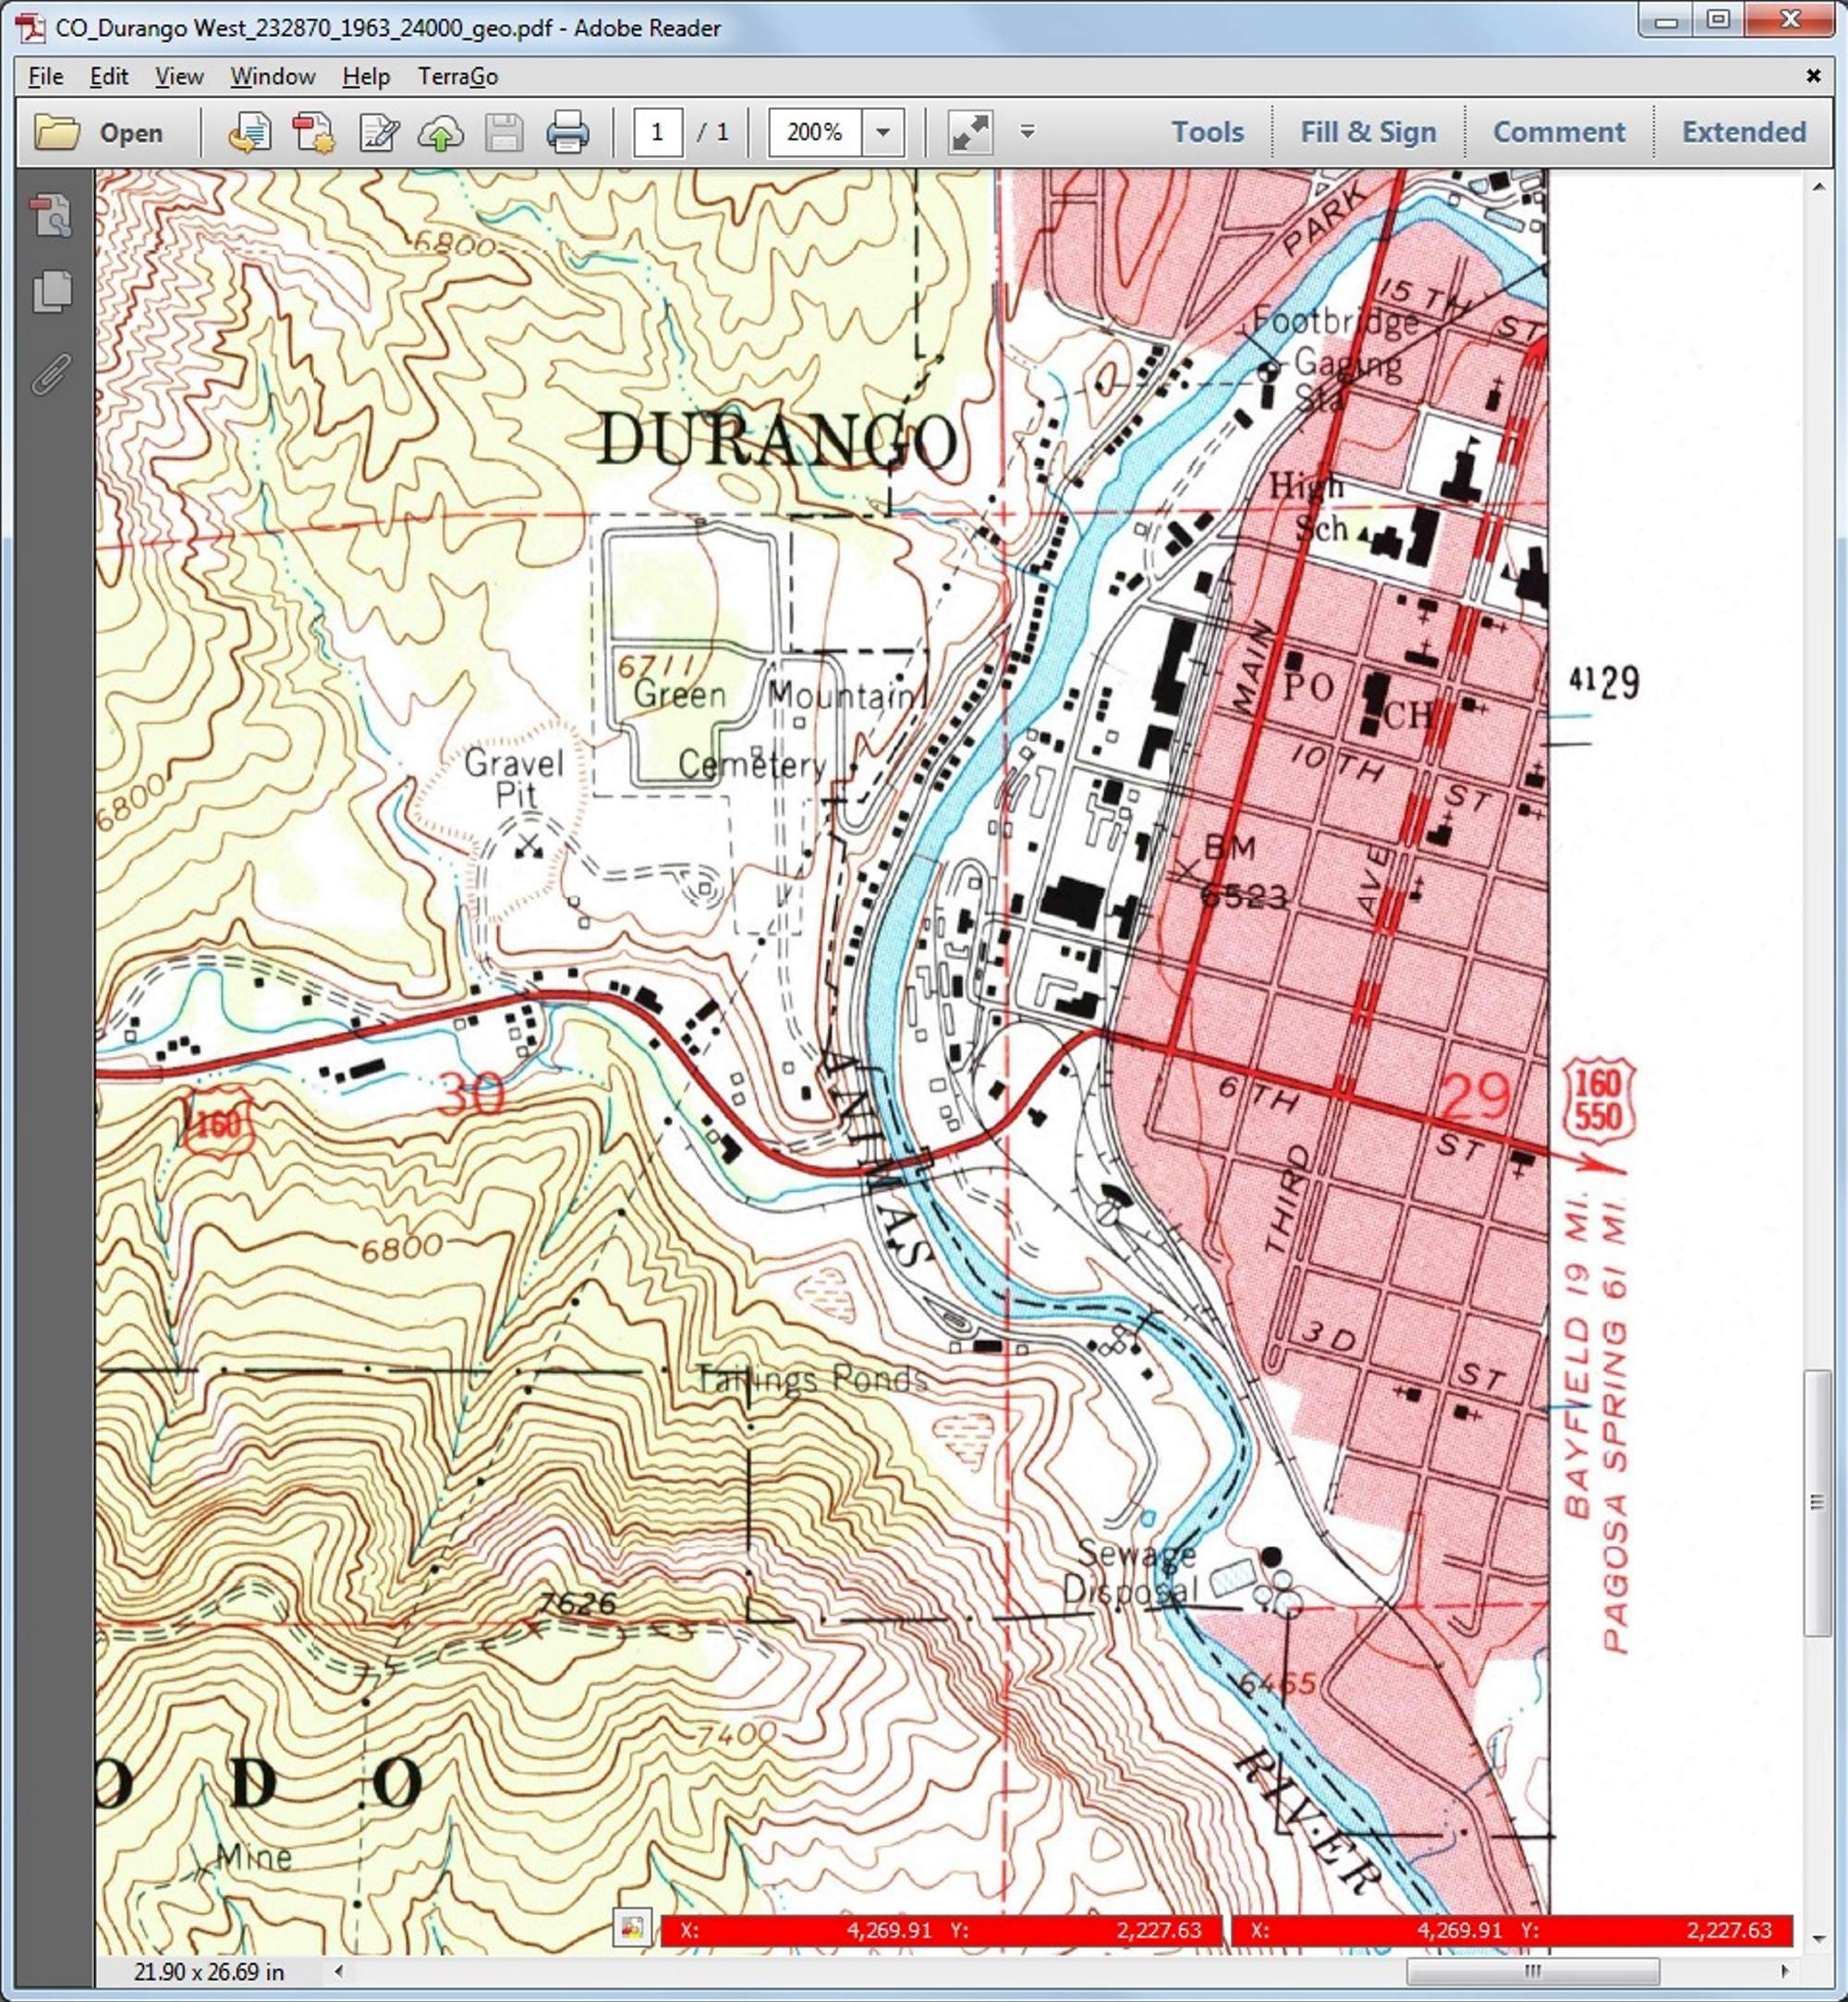 Action Line Mercy cleaned daily; Durango topo maps untouched since on